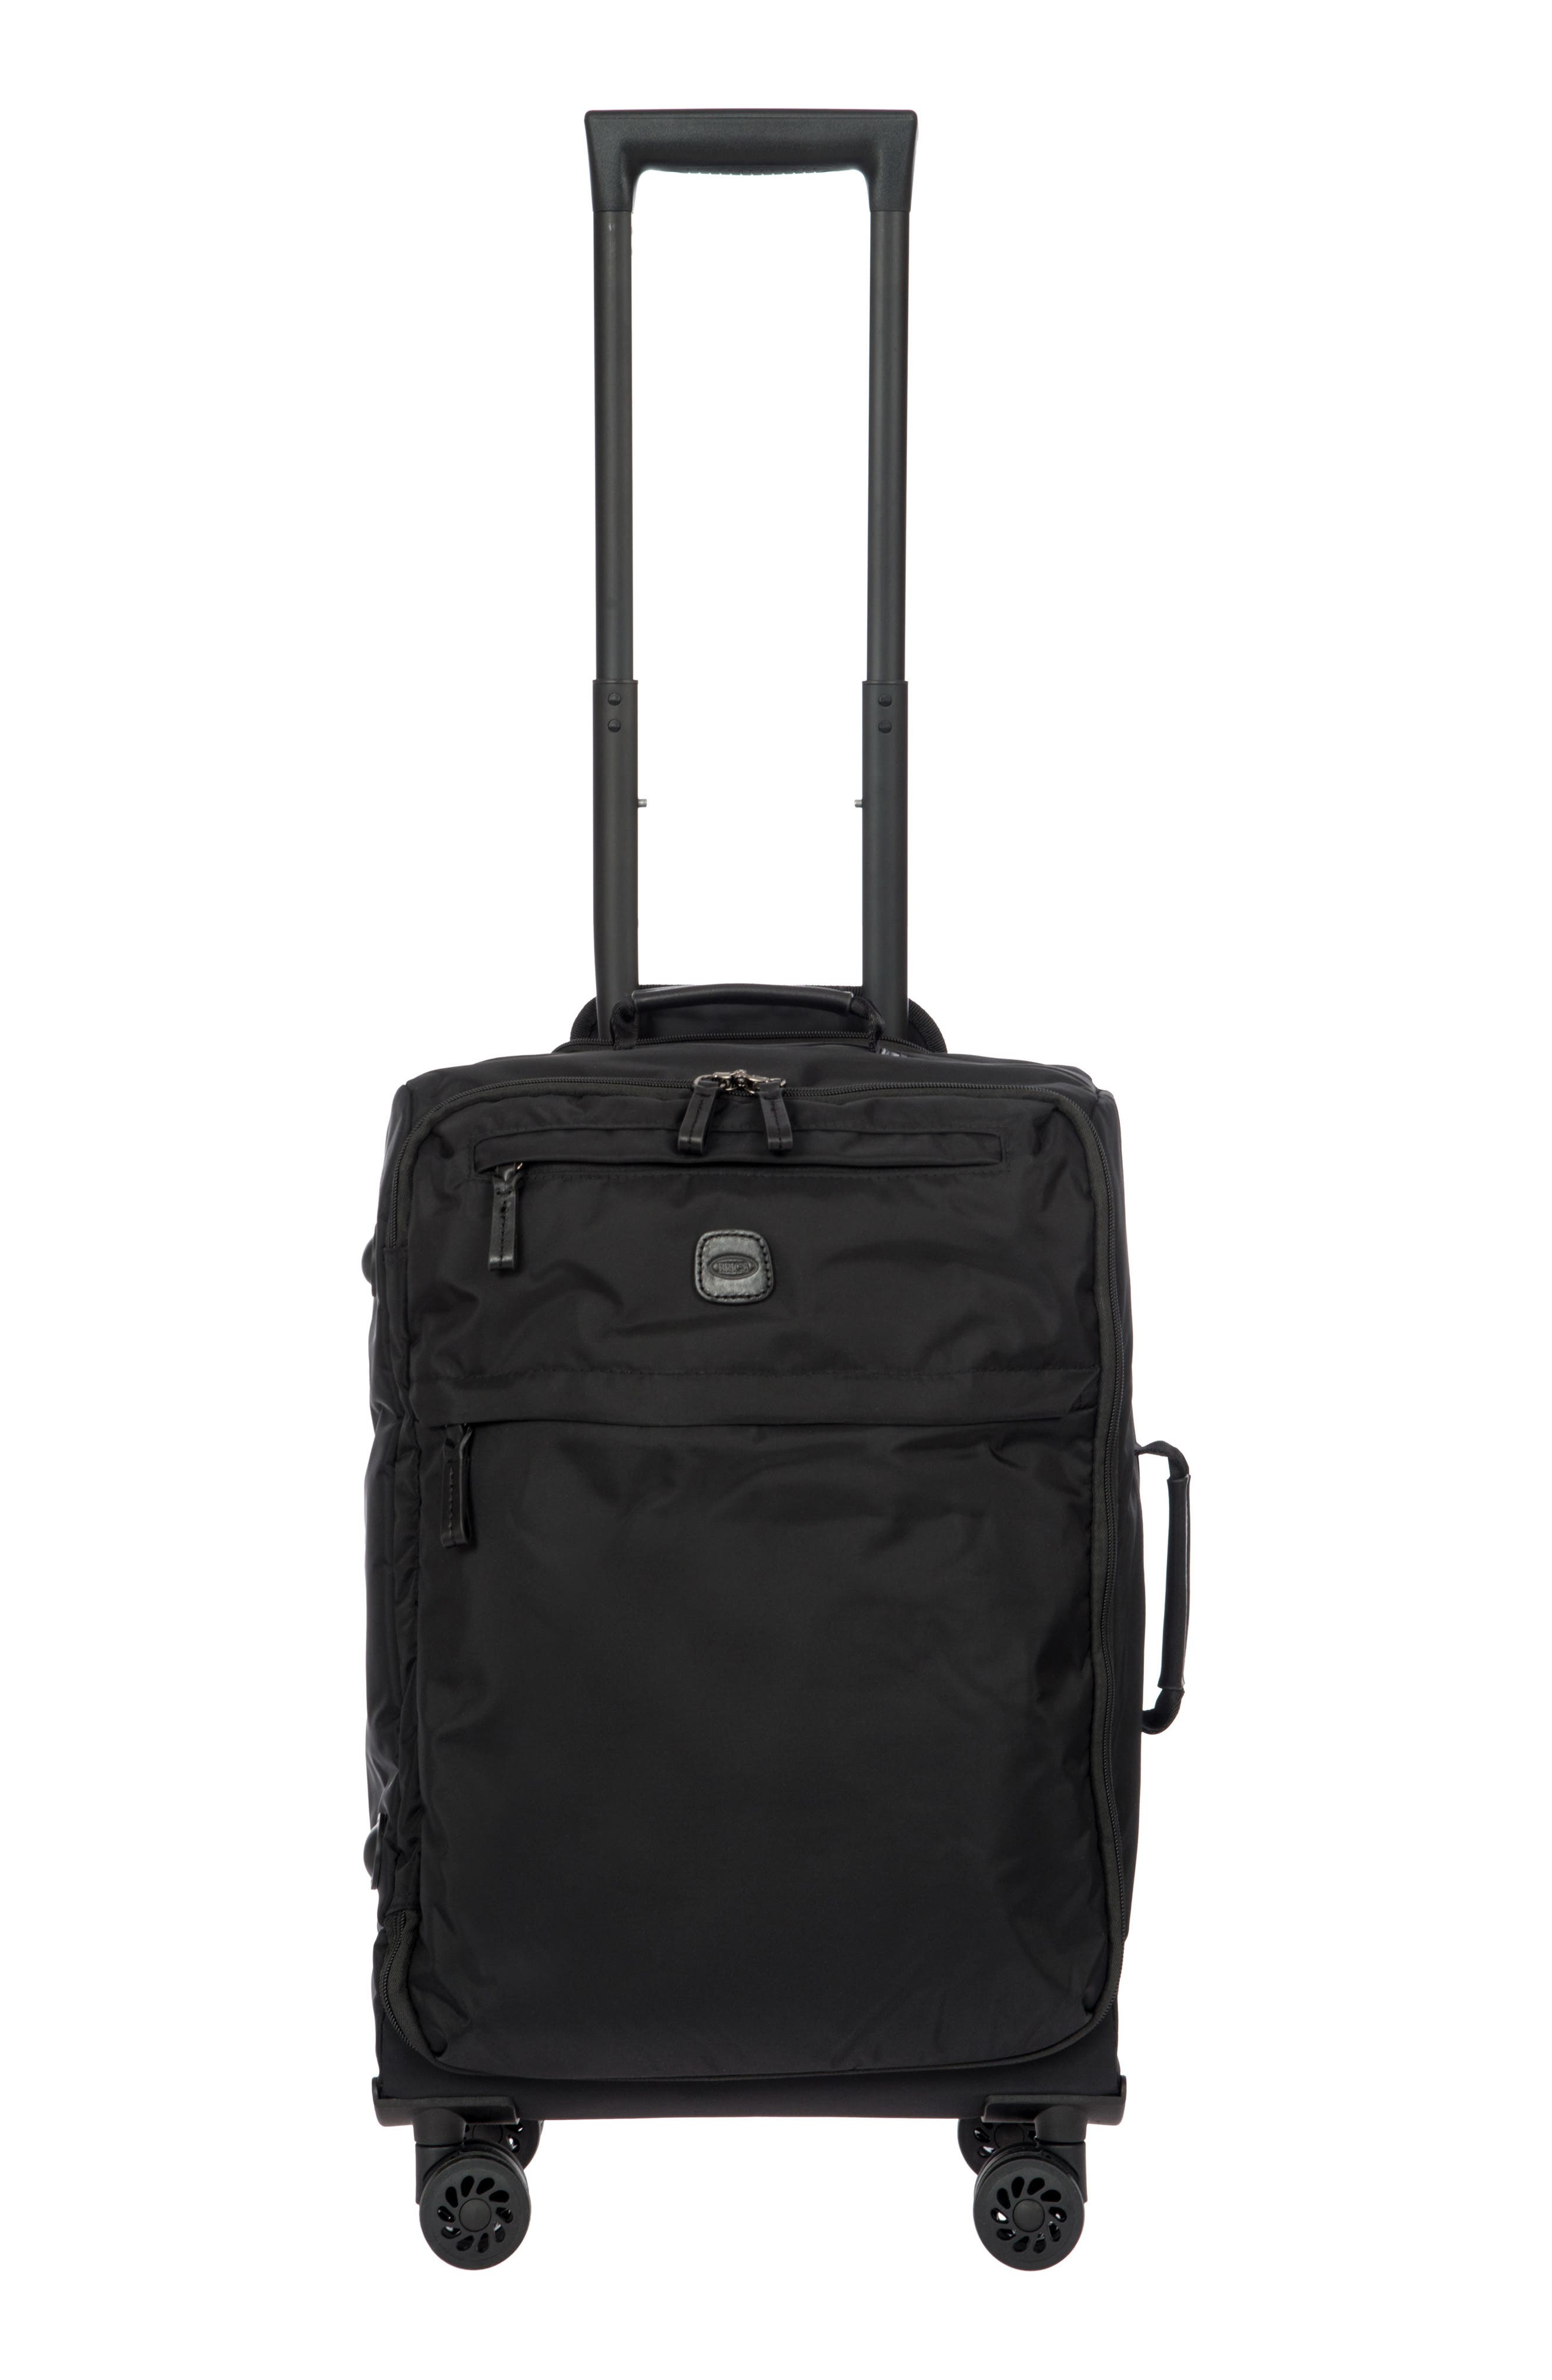 X-Bag 21-Inch Spinner Carry-On,                             Main thumbnail 1, color,                             BLACK/ BLACK